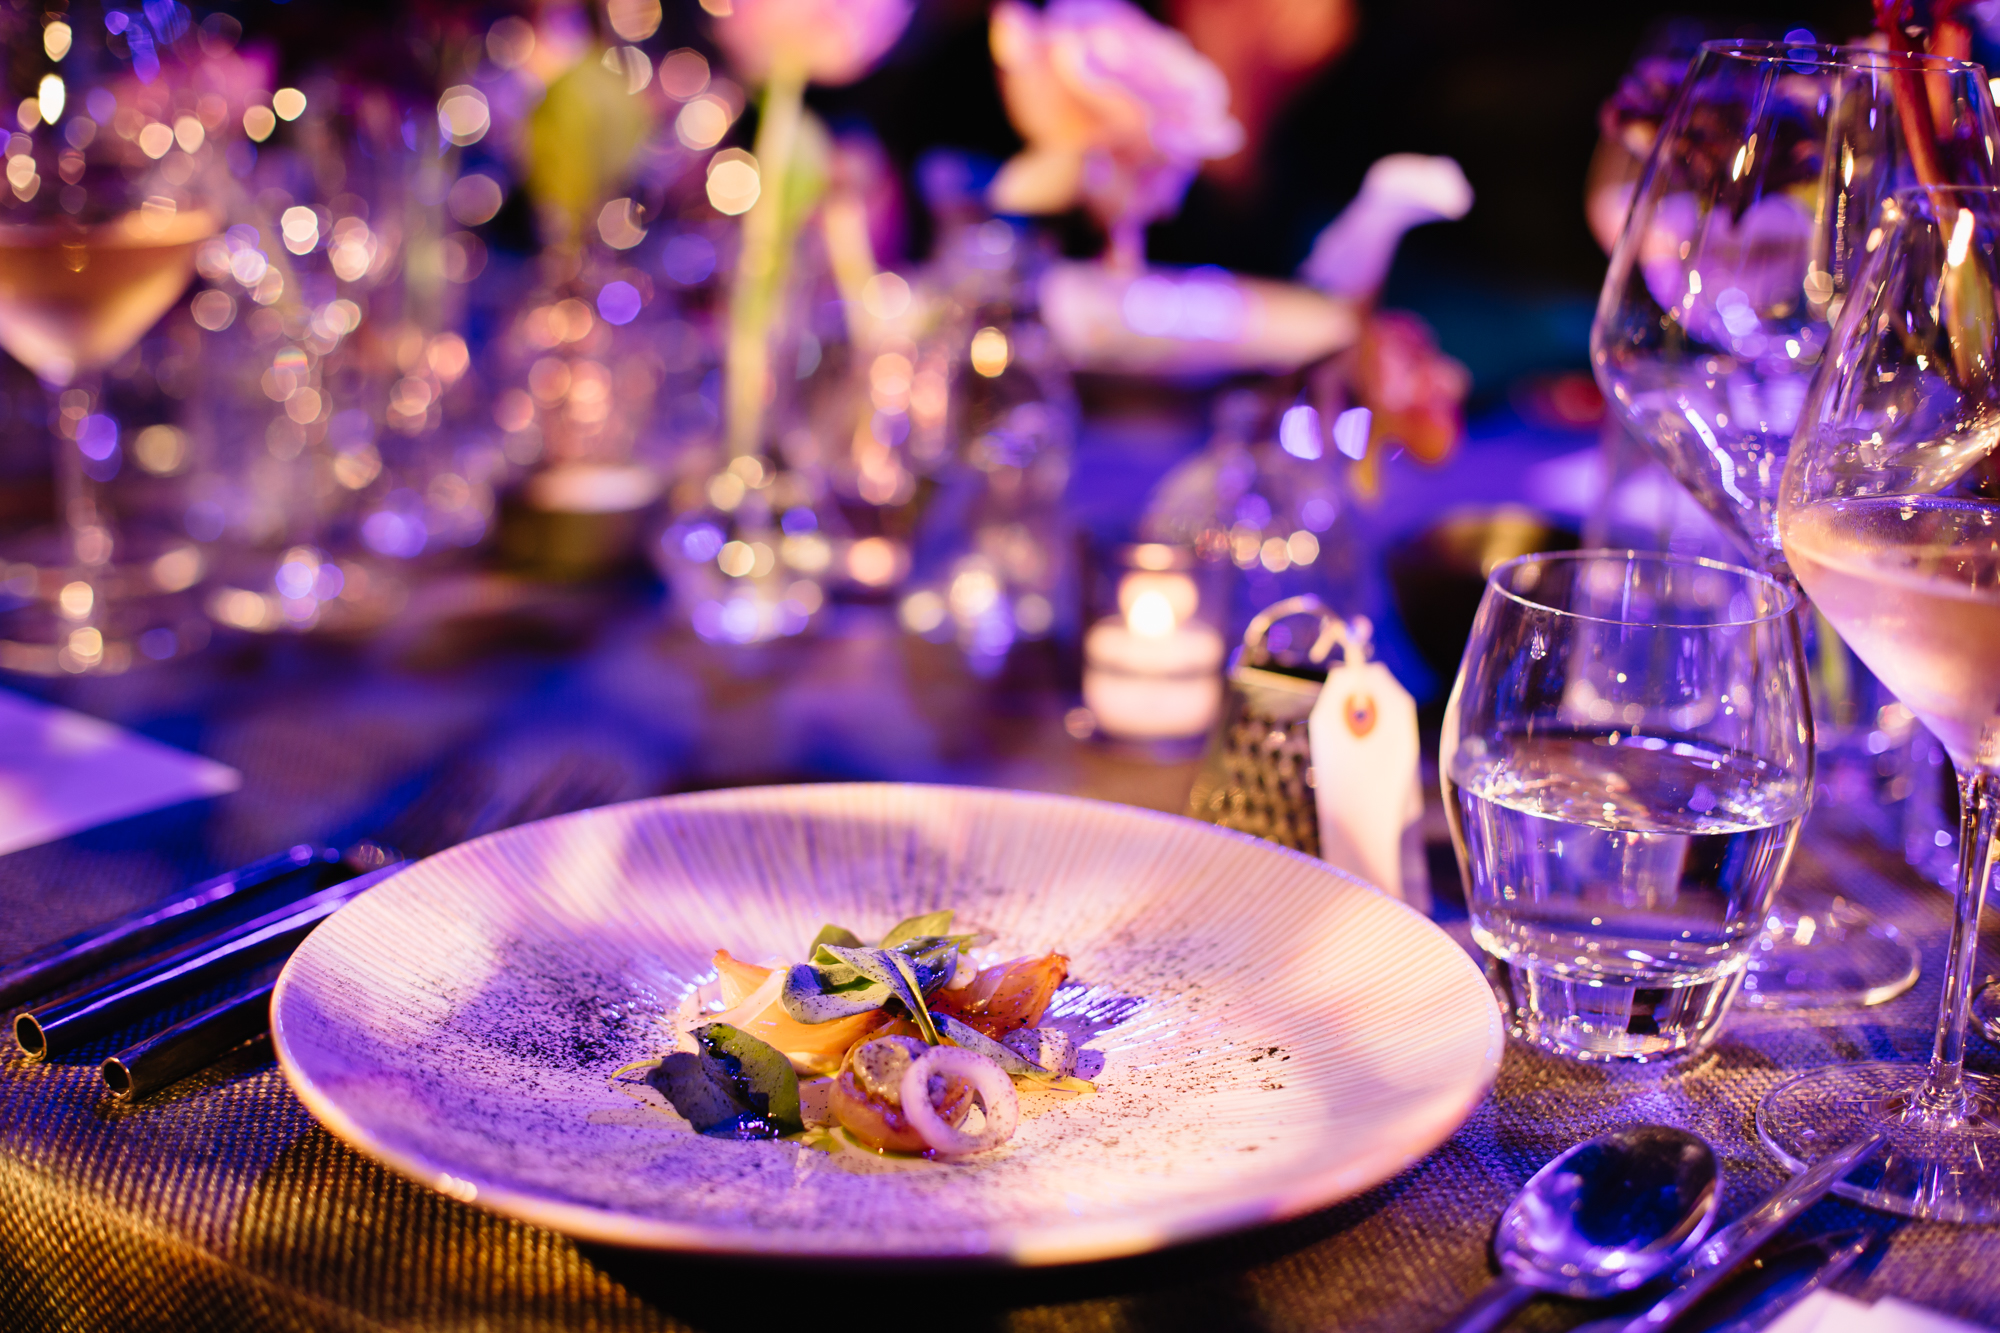 corporate event catering plate